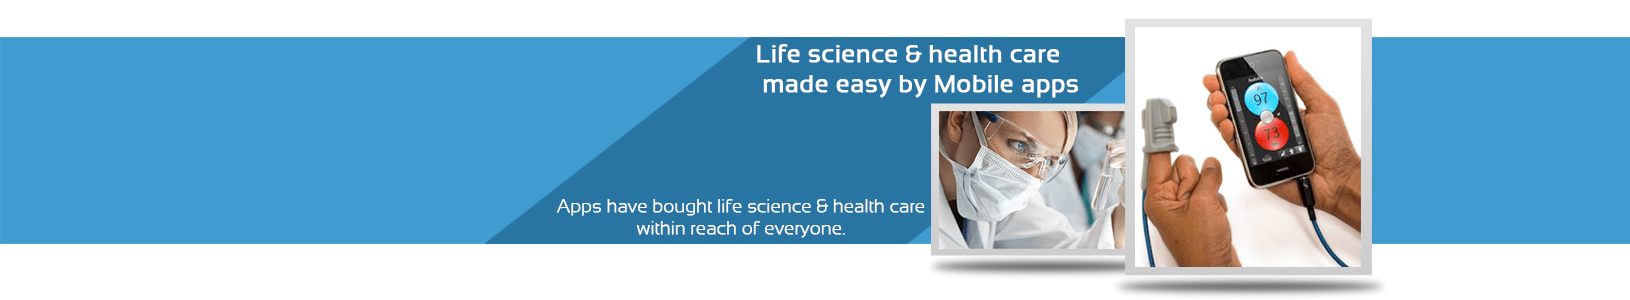 mobilility-solution-for-life-science